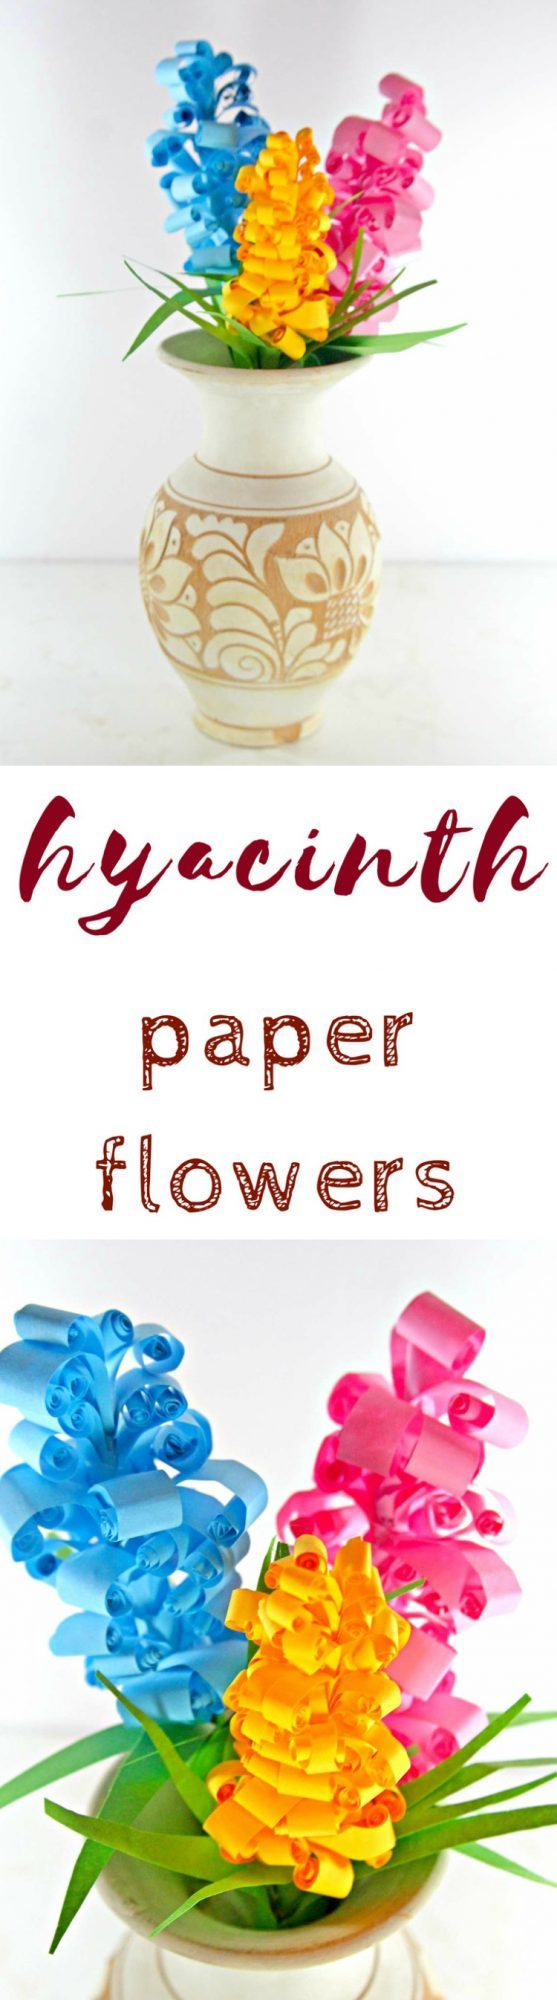 Swirly paper flowers